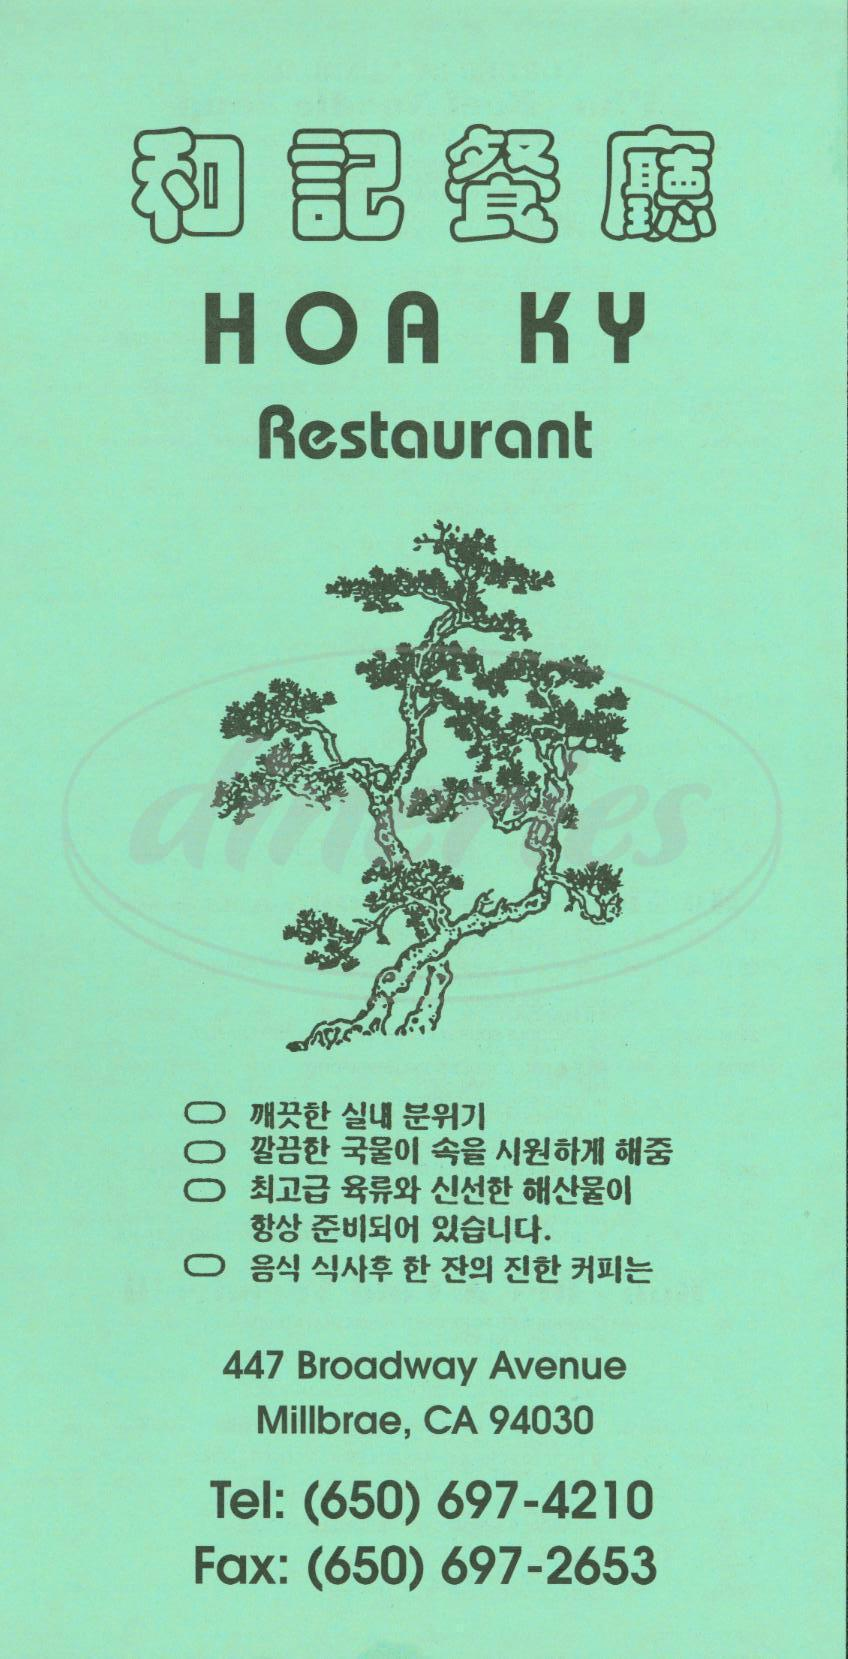 menu for Hoa Ky Restaurant